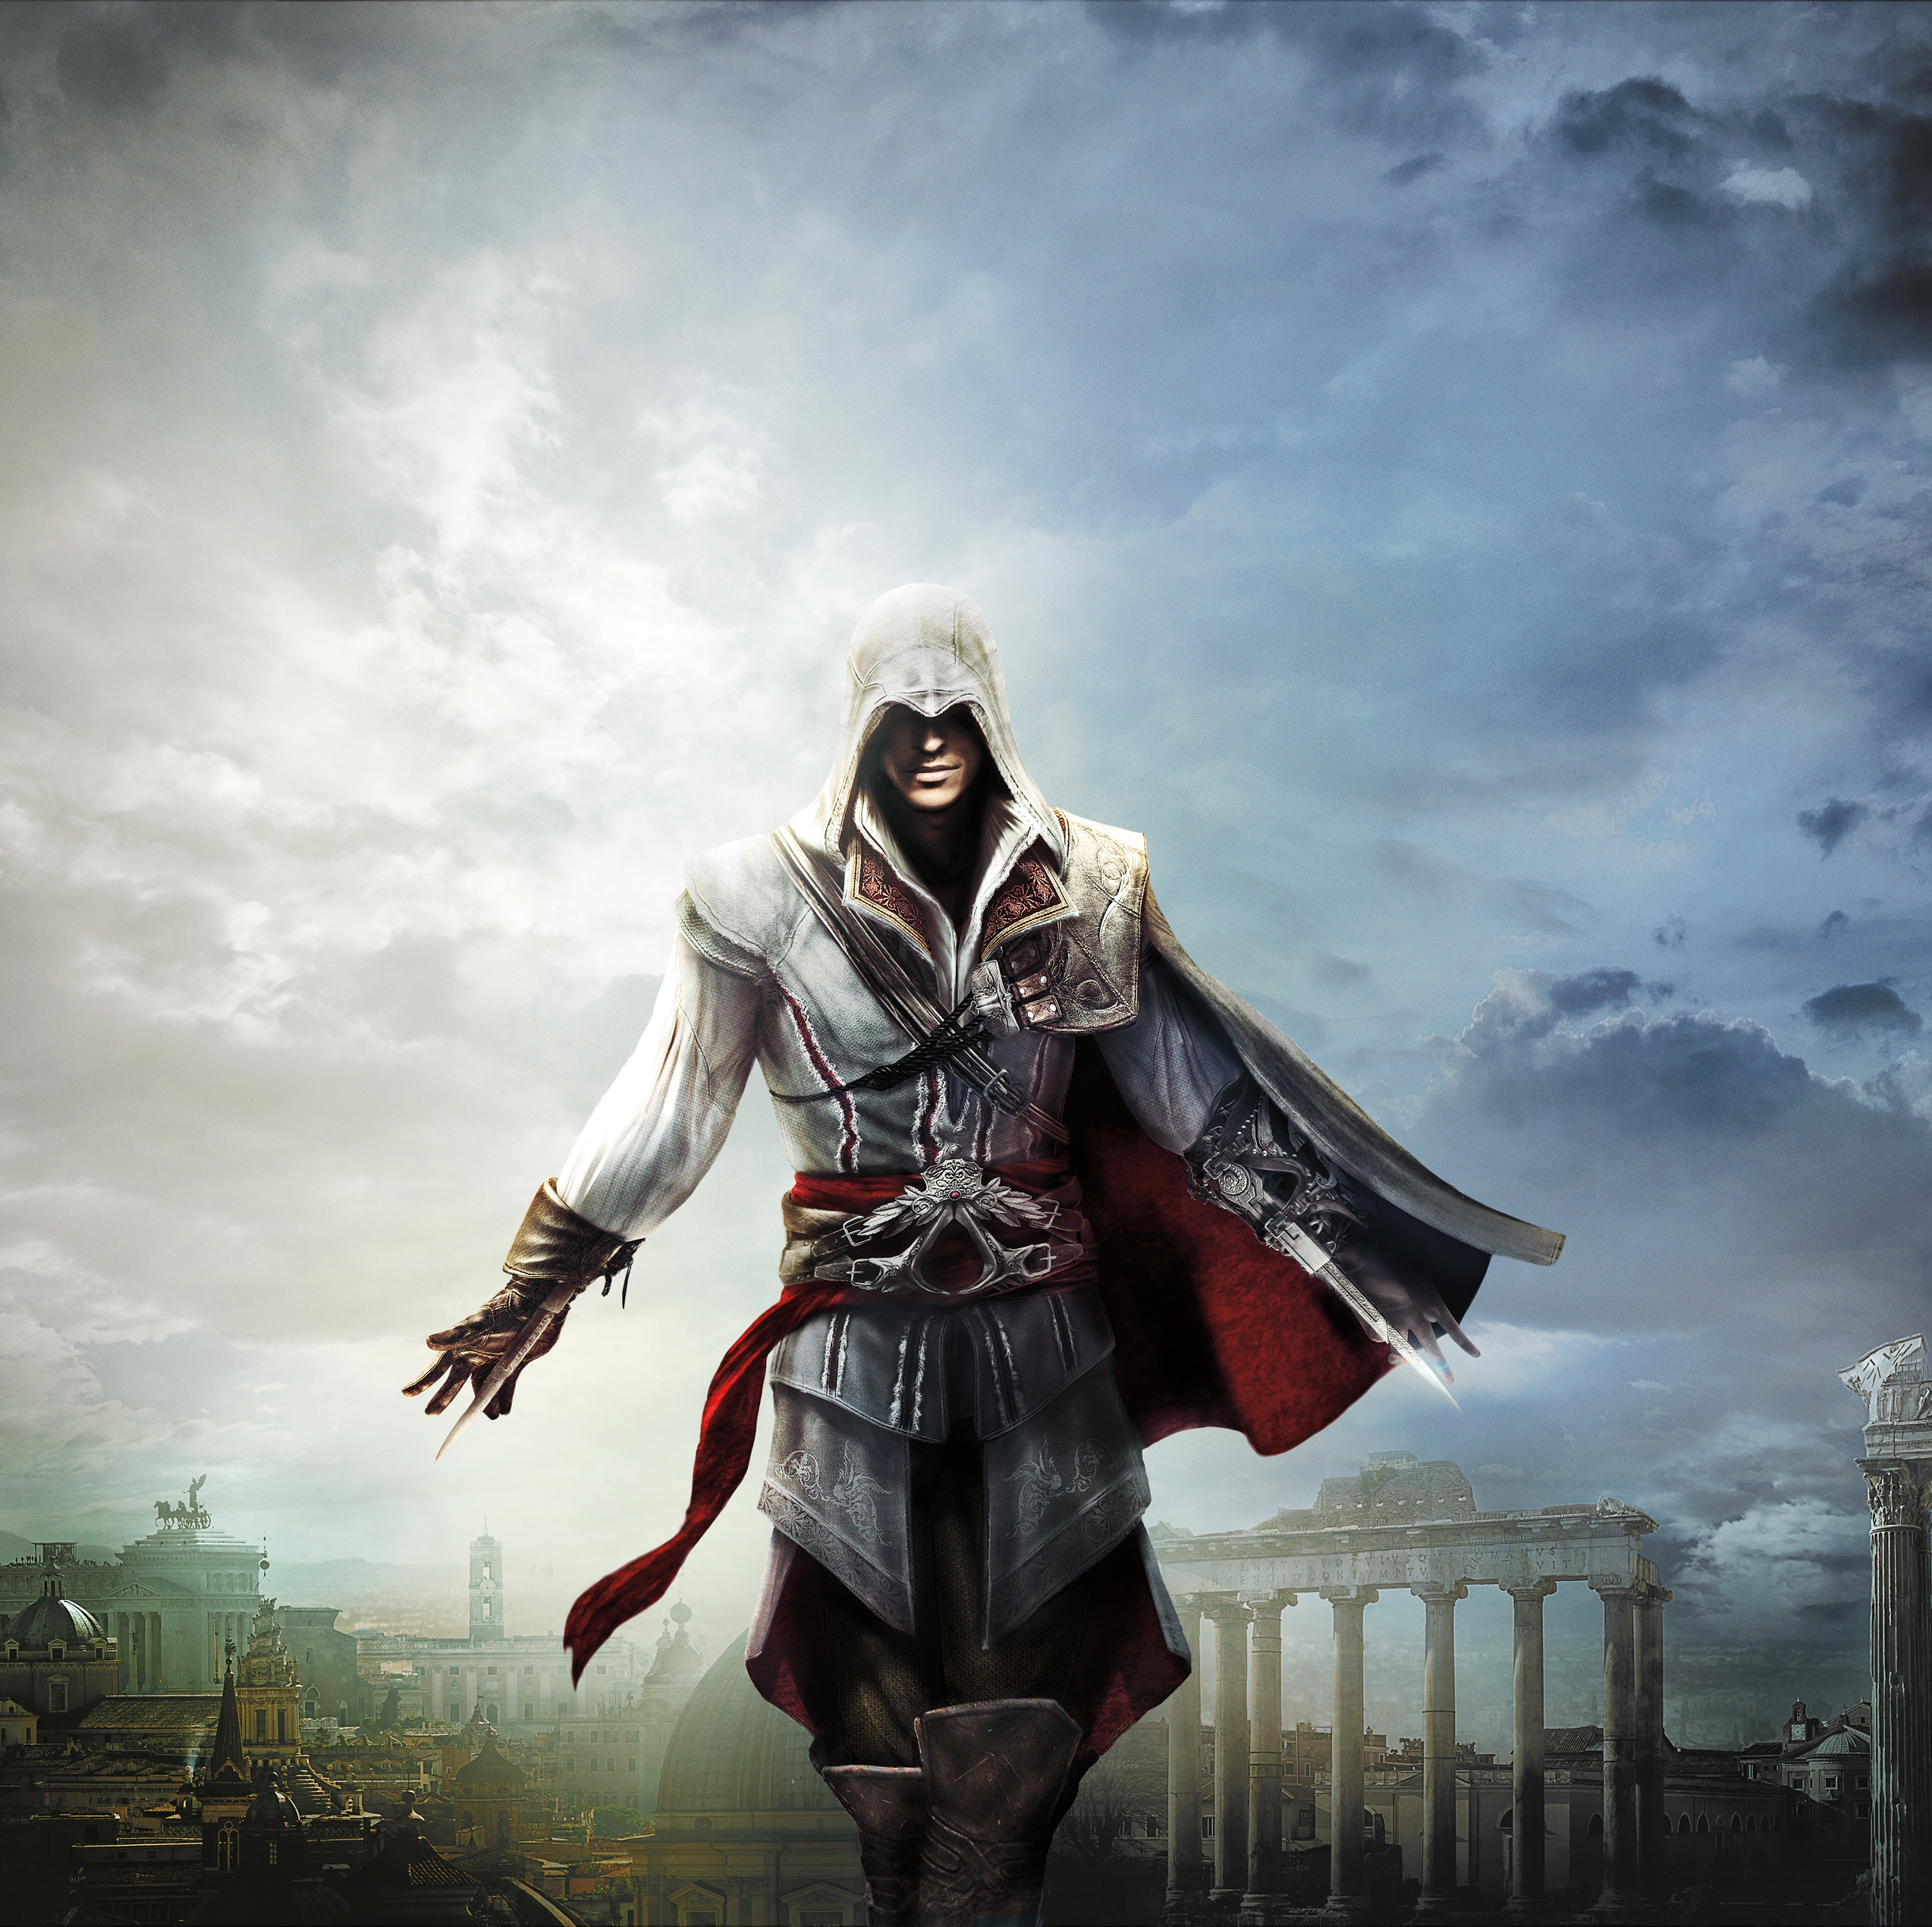 Review: Assassin's Creed The Ezio Collection